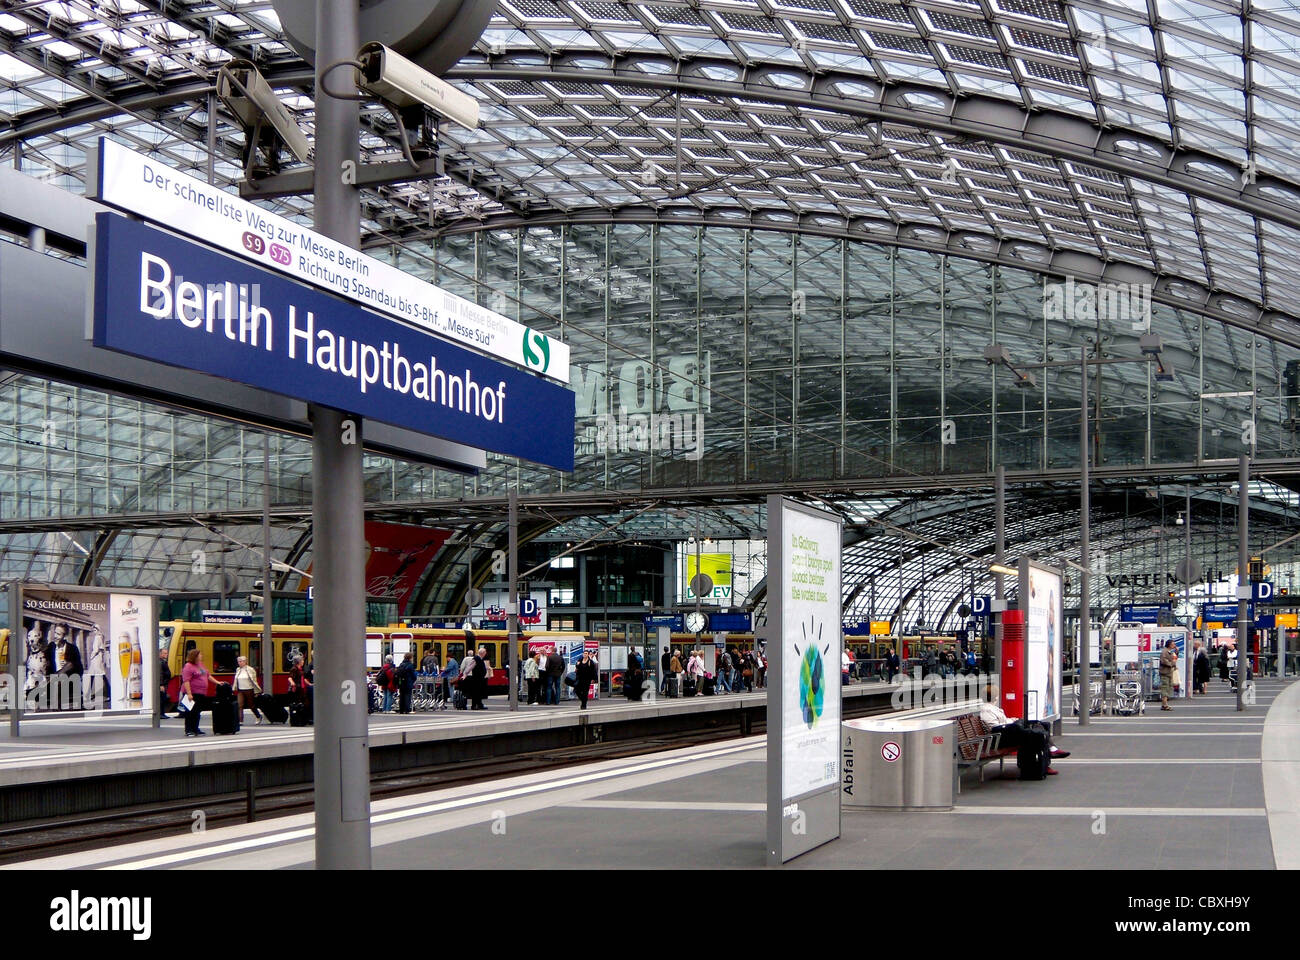 Central train station of Berlin. Stock Photo